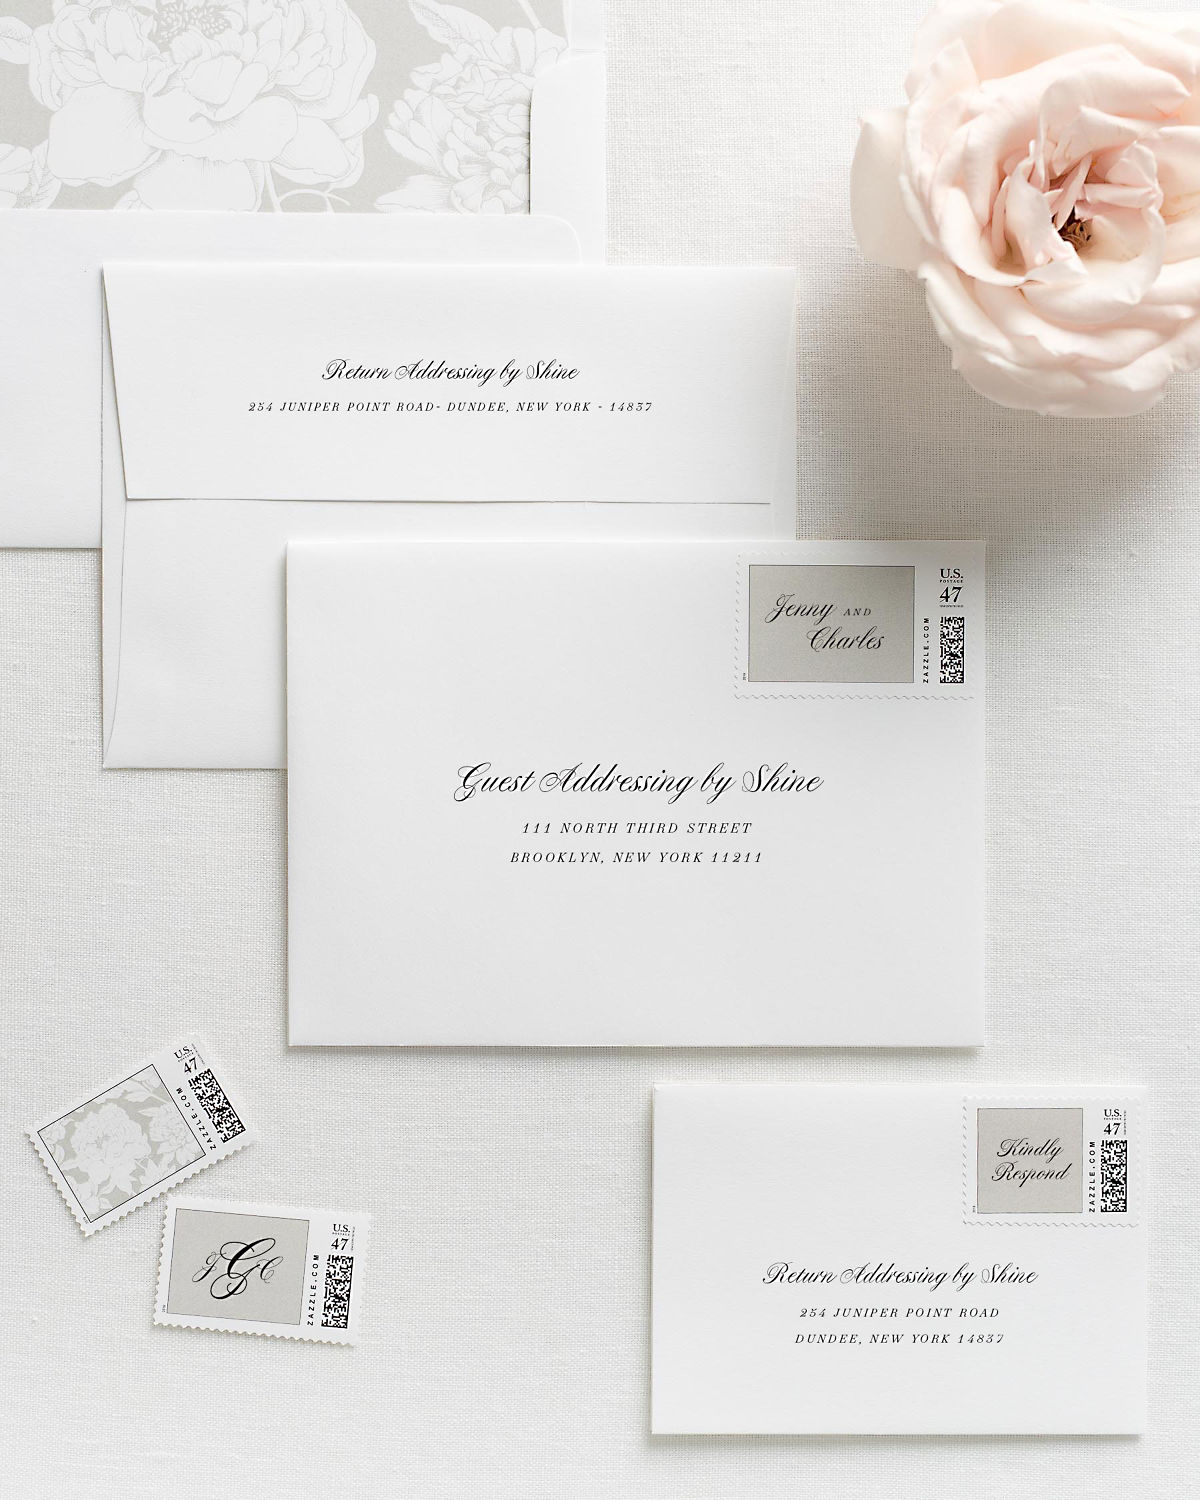 Wedding Invitation Envelopes with Pre-Printed Addresses and Matching Light Gray Custom Postage